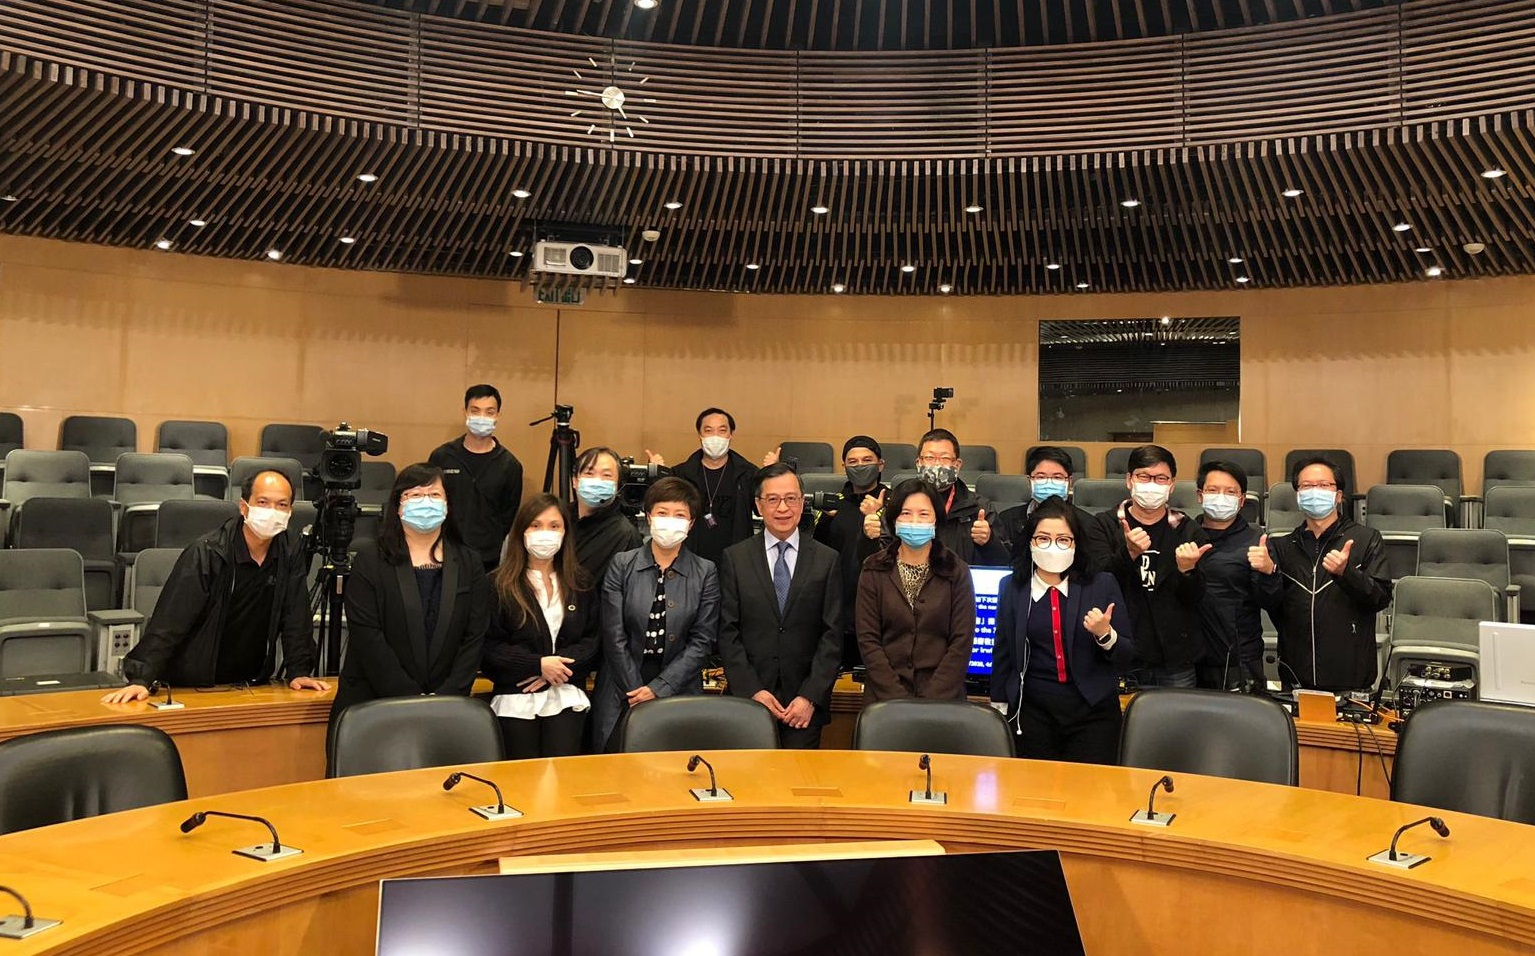 """The first talk was held today when (front row, fourth from the left) Professor Alan Kam Leung Chan, Provost of CUHK, spoke on the topic """"Higher Learning in the Era of Industry 4.0"""" to launch the series."""